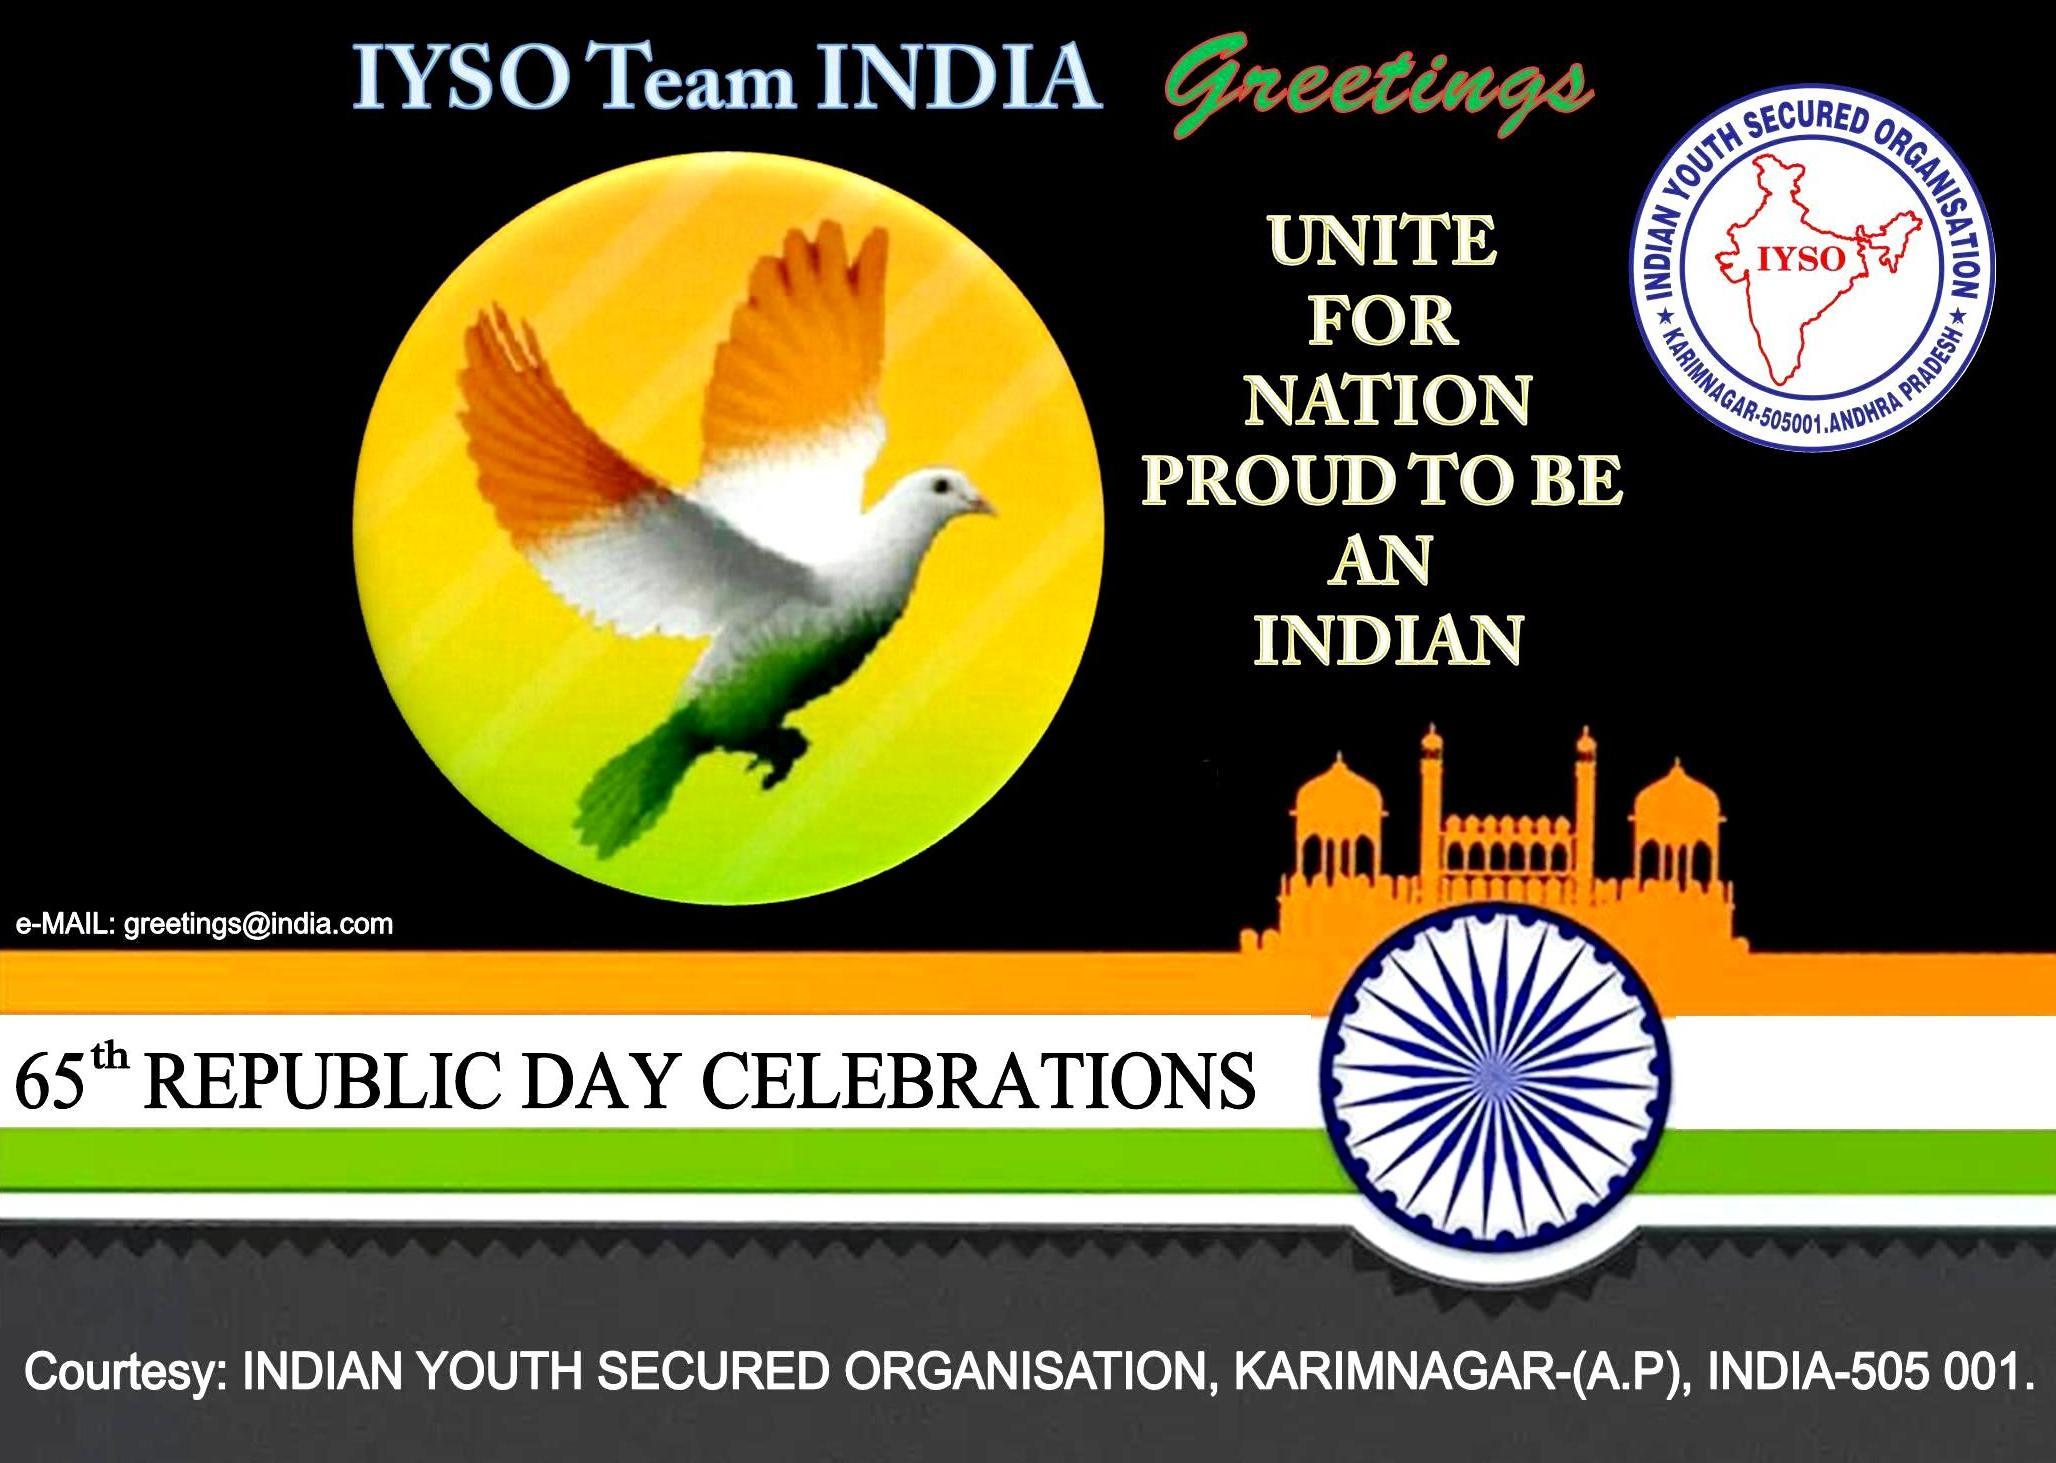 Iyso Team India Greetings On The Eve Of 65th Republic Day